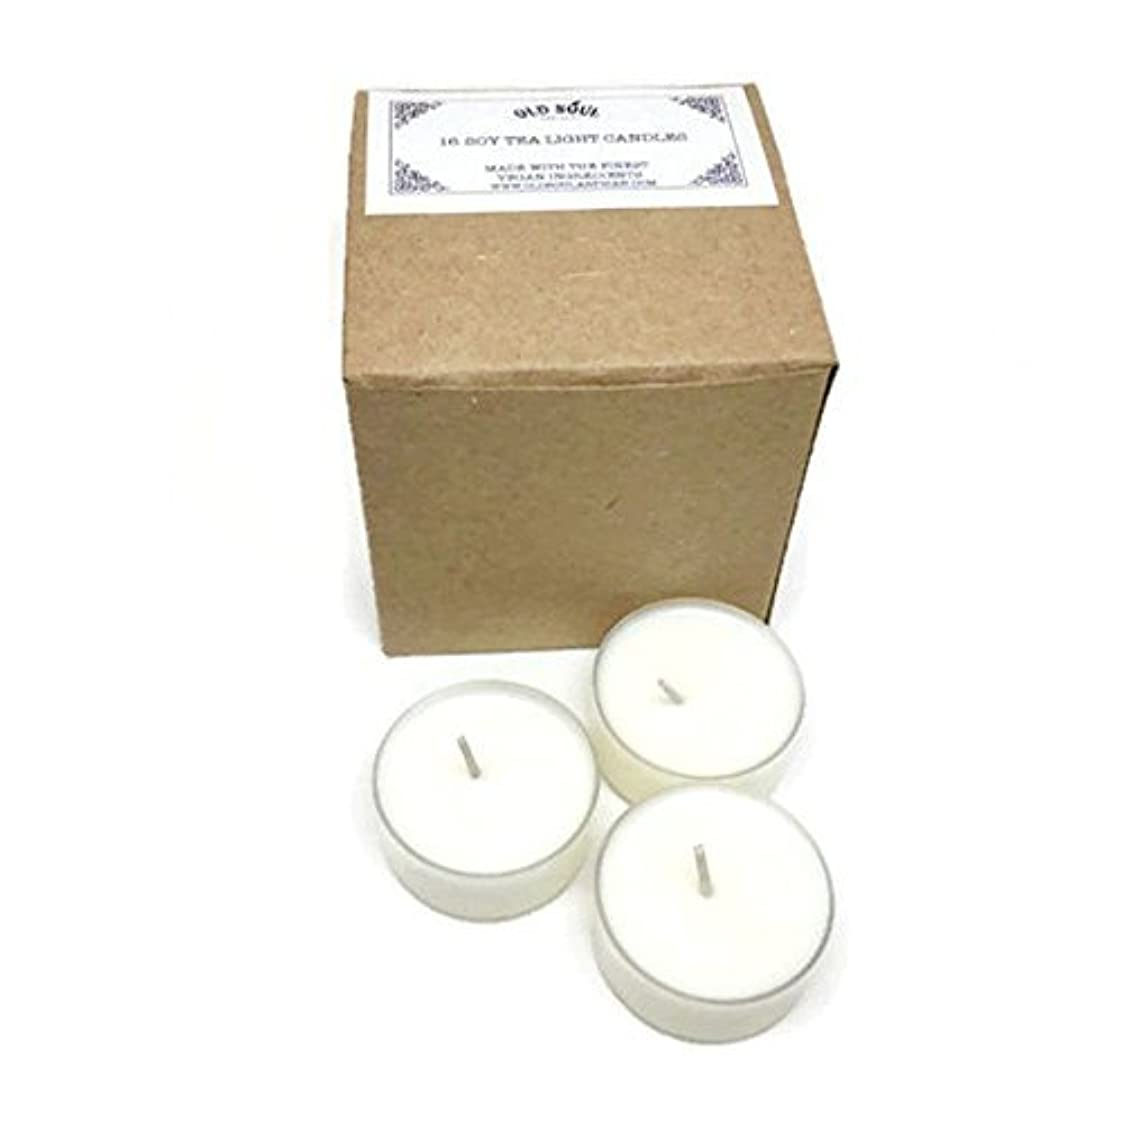 ガイダンス失礼なゲートVanilla Scented Vegan Soy Tea Light Candles - 16 Box Set [並行輸入品]